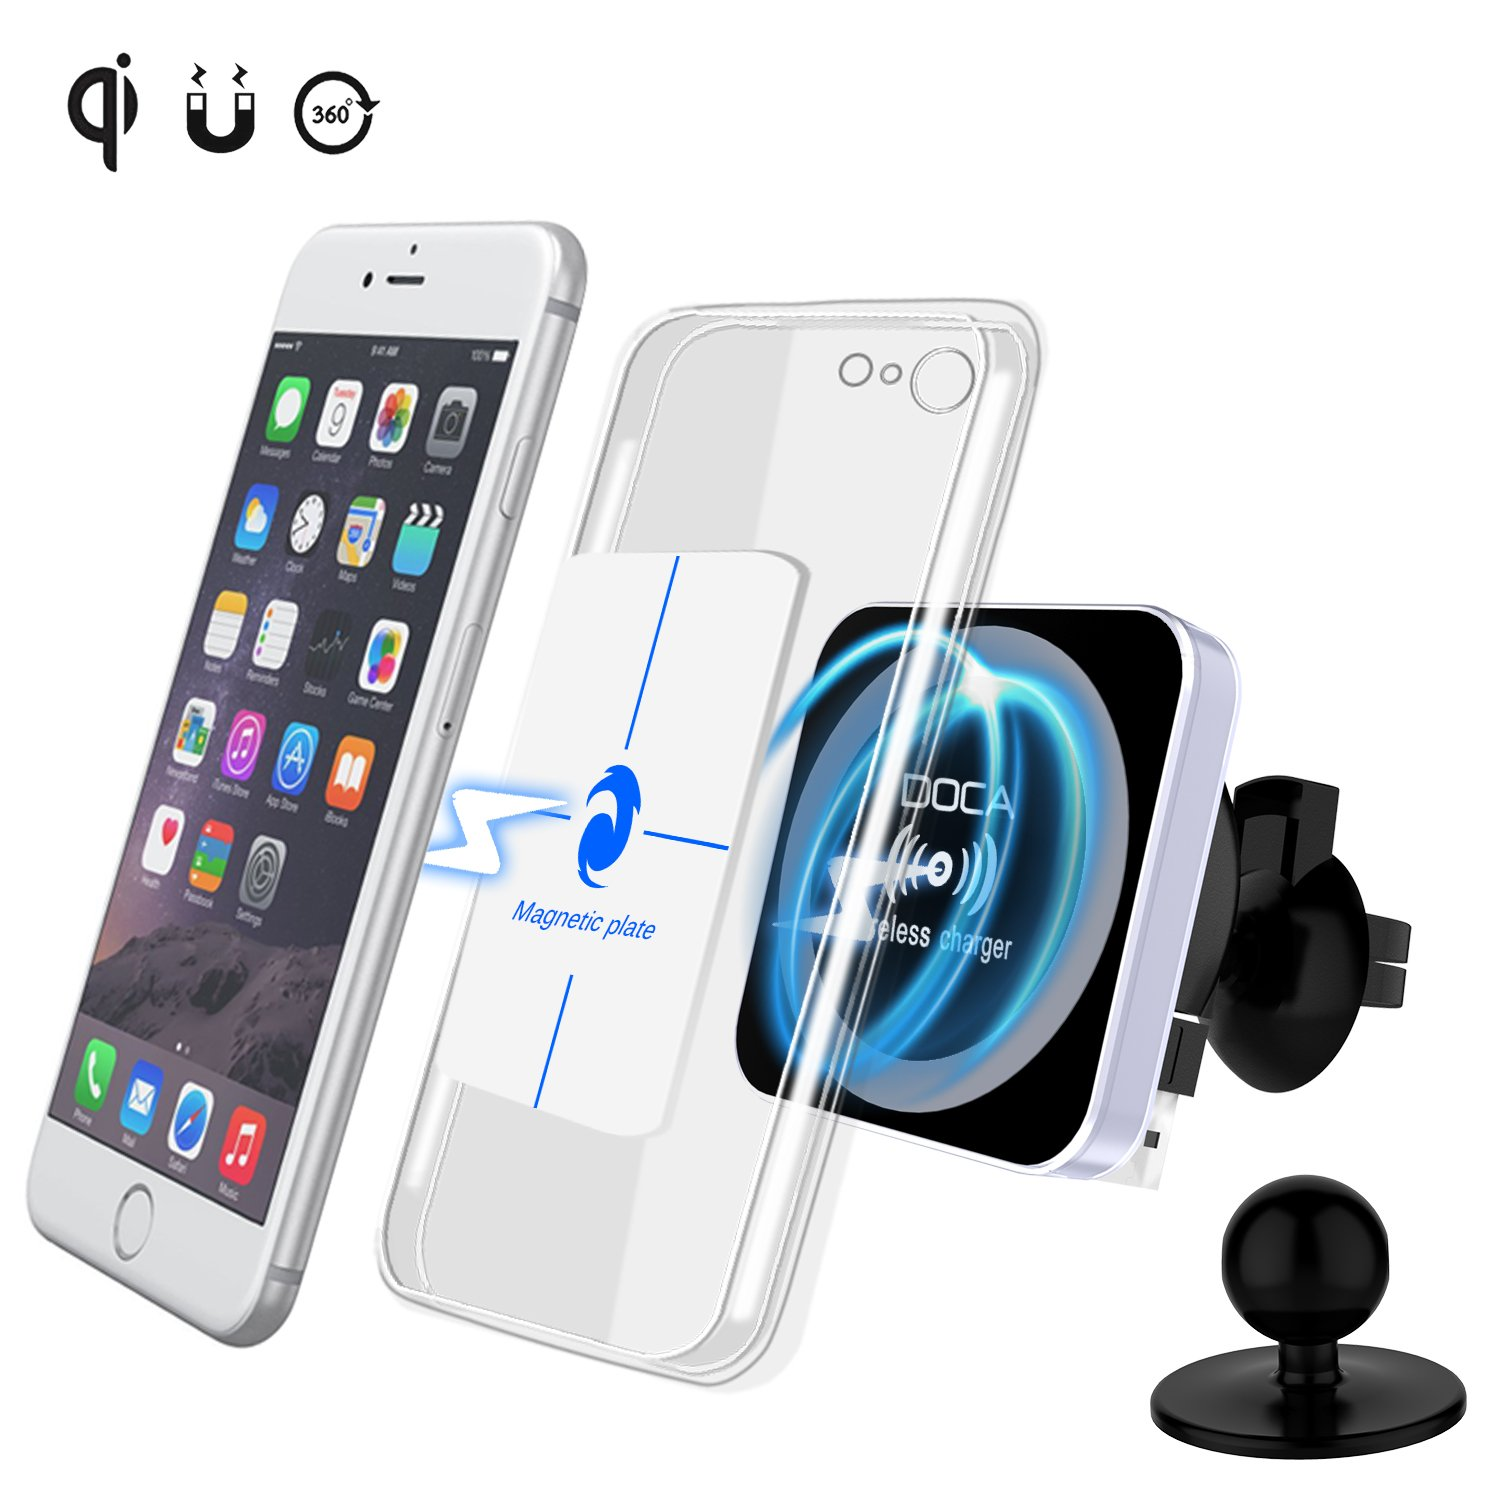 Magnetic Wireless Car Charger, DOCA Magnet QI Wireless Car Charger Mount Holder with Air Vent for iPhone X iPhone 8/8 Plus Galaxy Note 8 S8/S8 Plus S7 Edge and Any QI Enabled Phones by DOCA (Image #1)